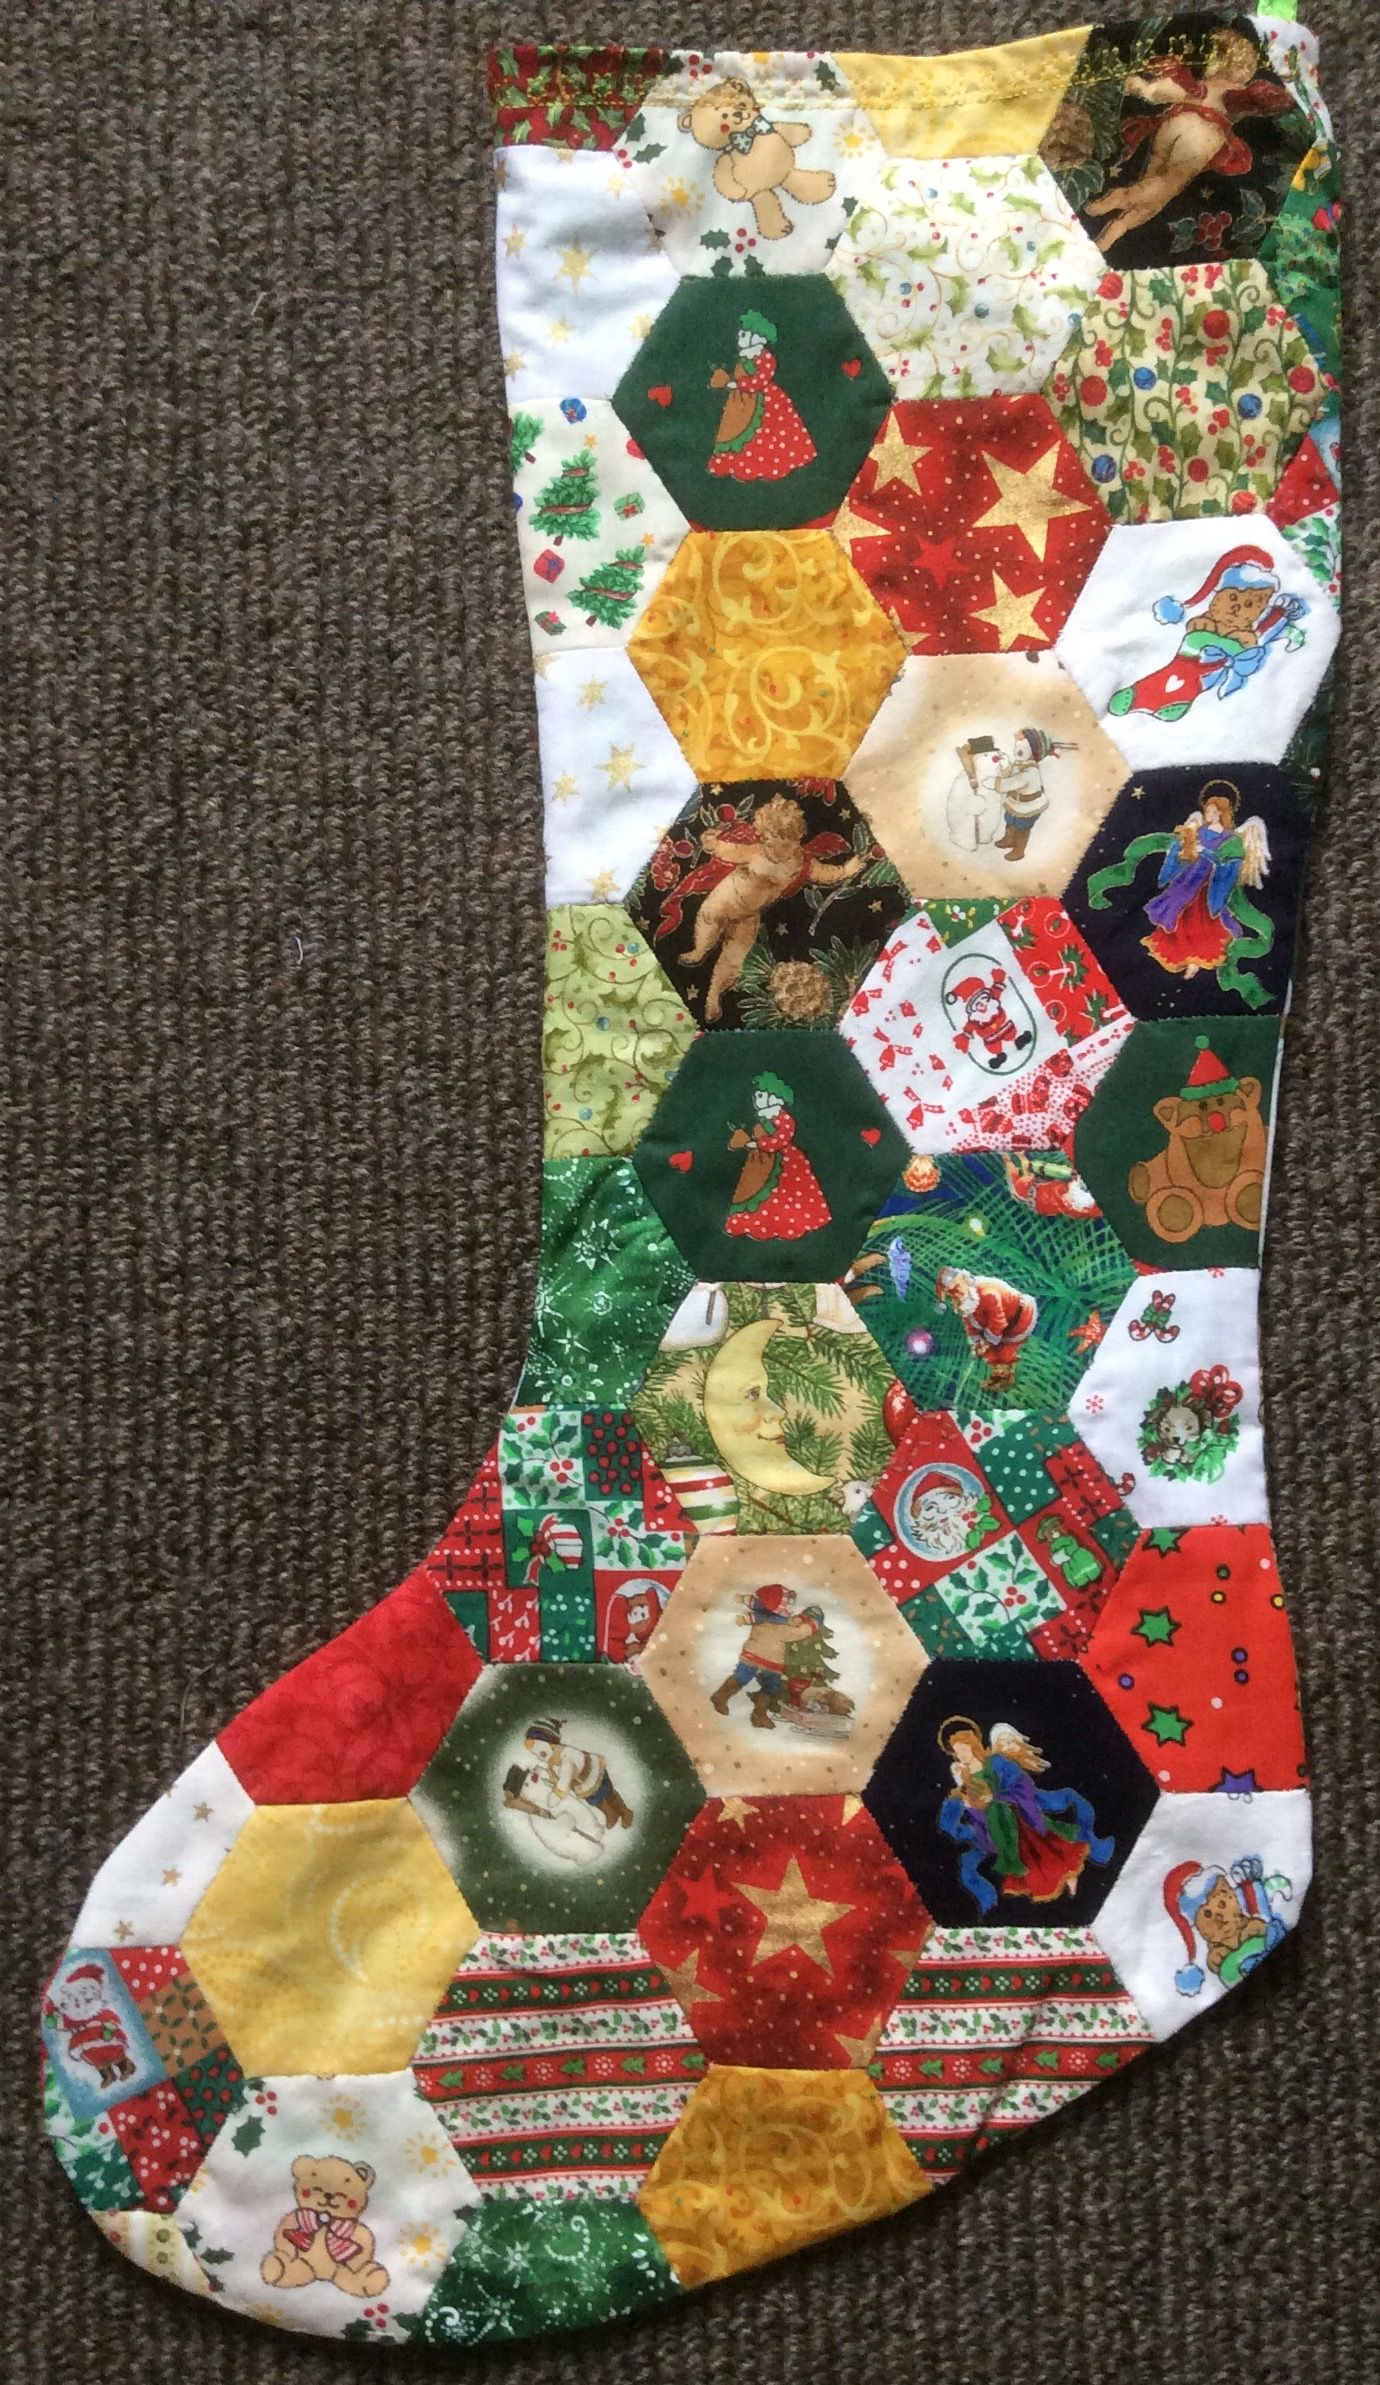 My Friend Judy Made This Lovely Stocking For My Grandson